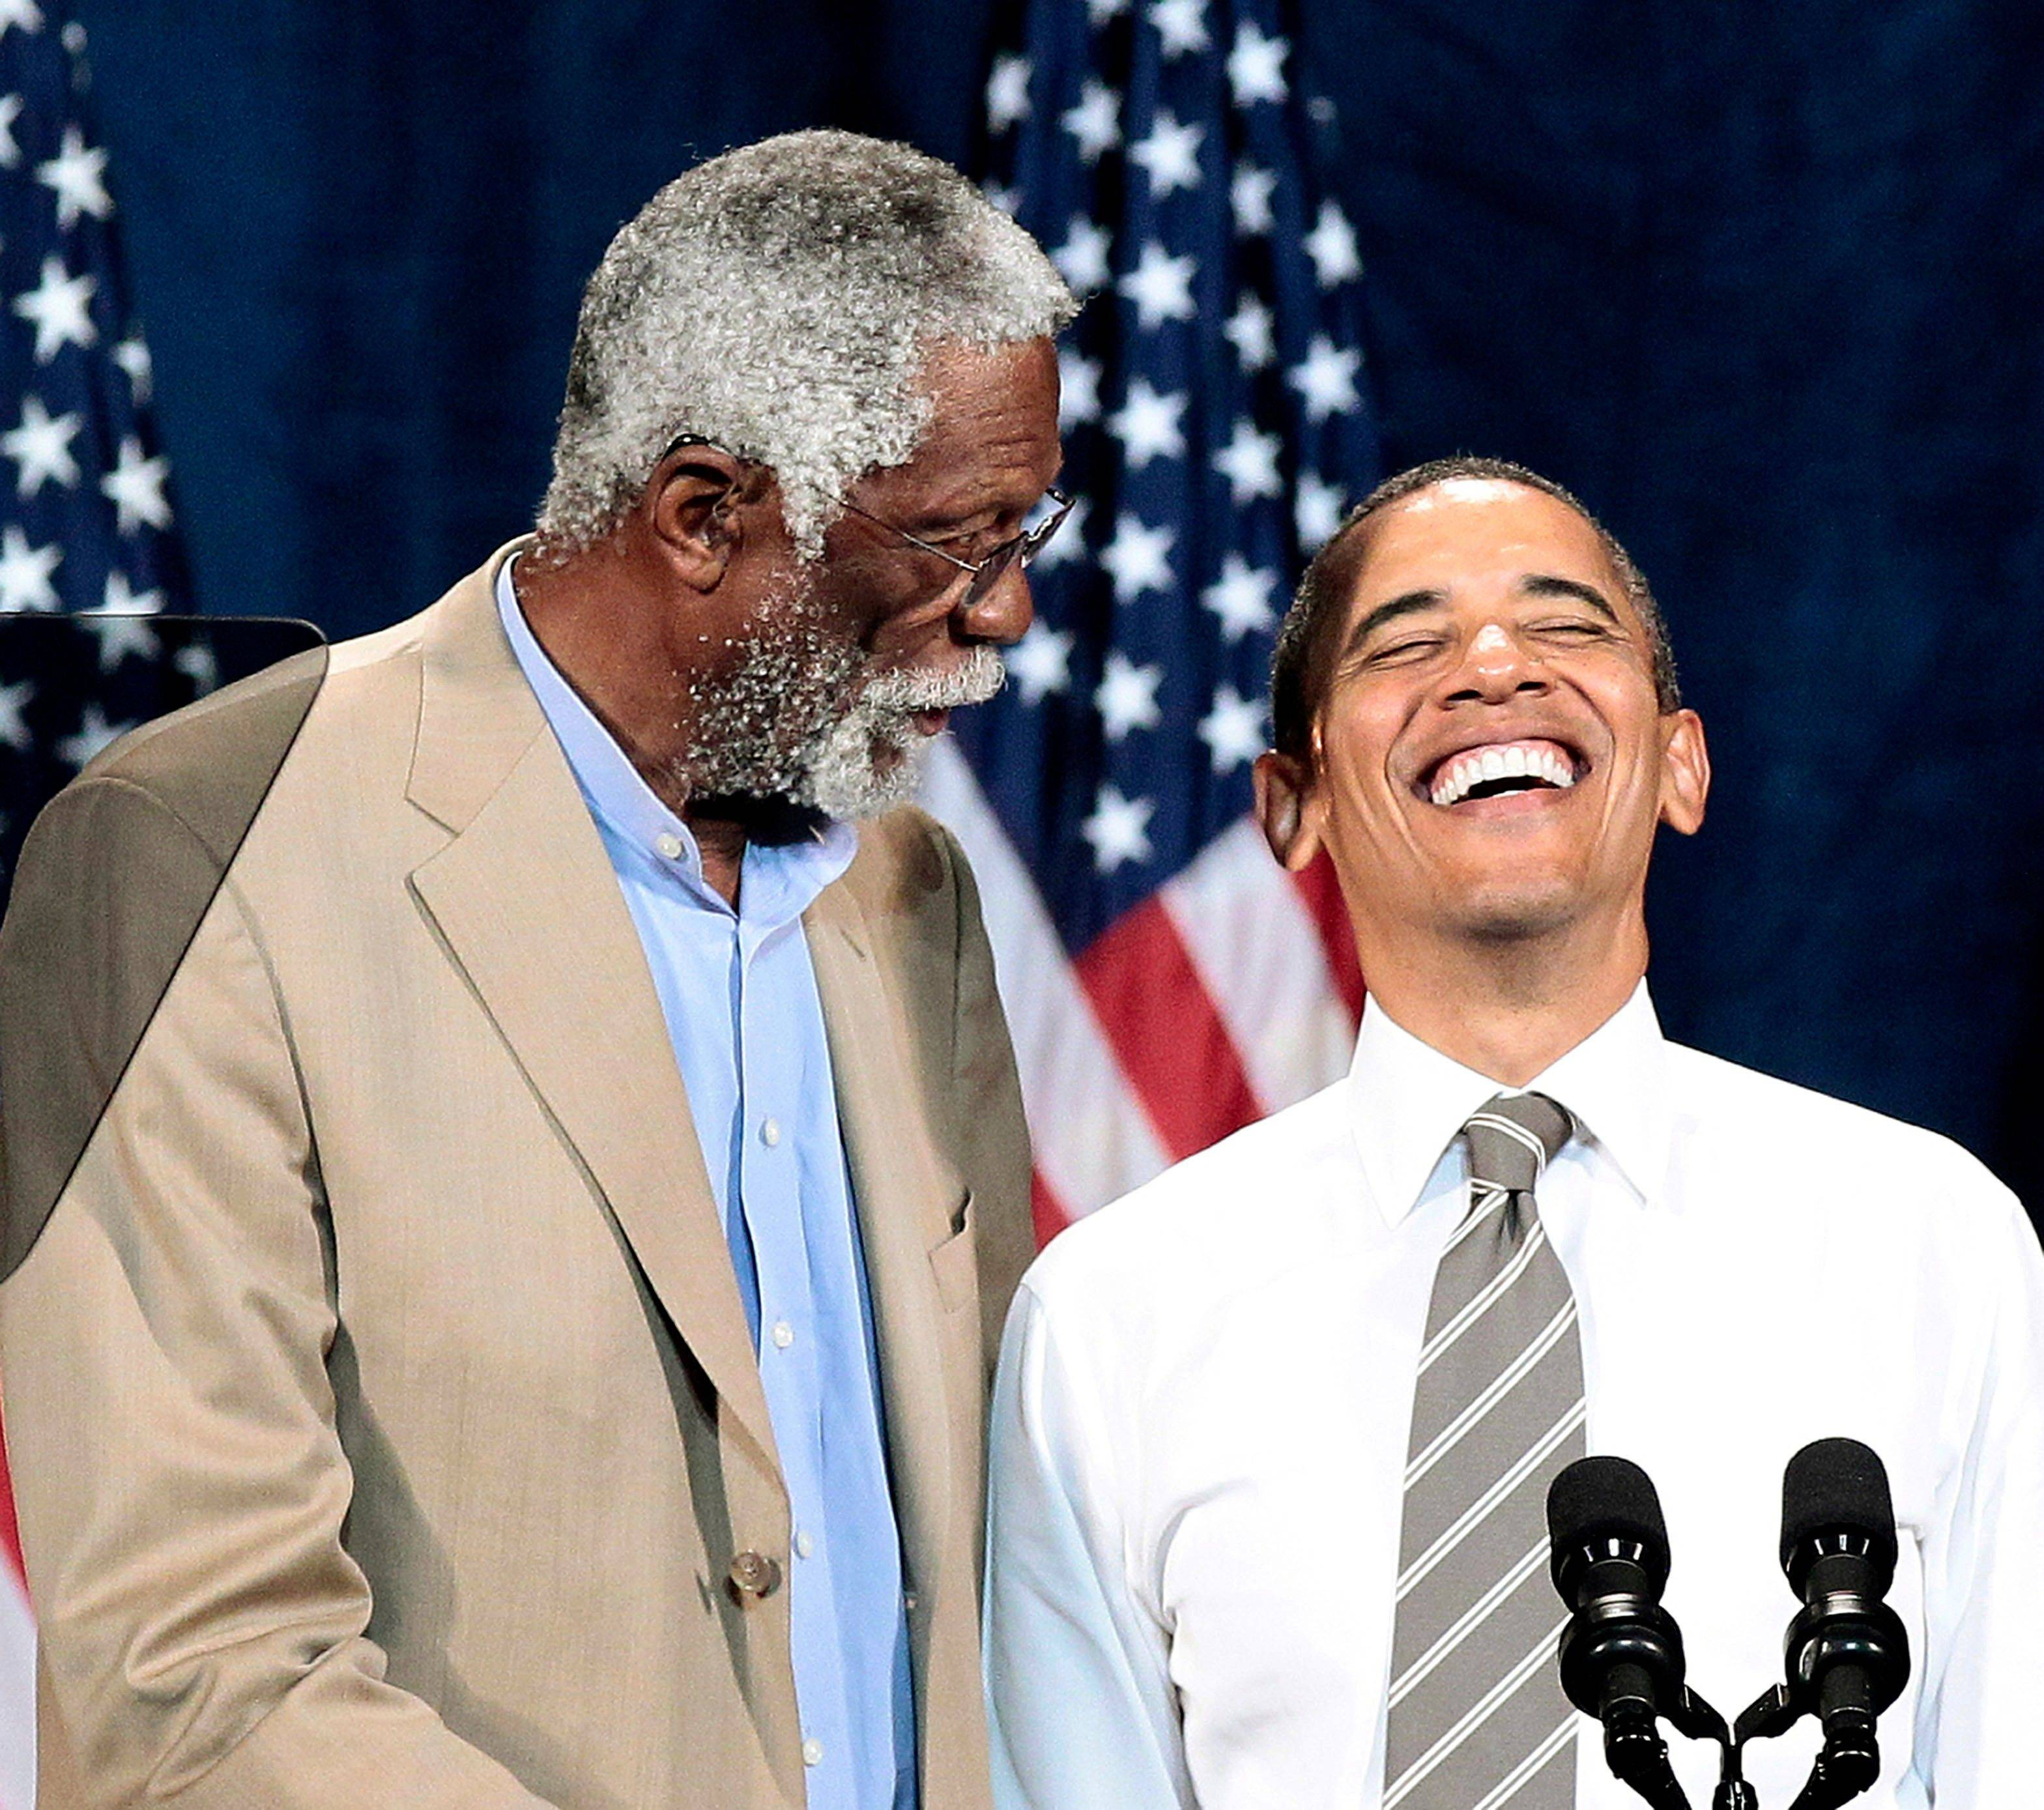 President Barack Obama is introduced by NBA Hall of Fame player Bill Russell during a Democratic fundraiser Sunday in Seattle.